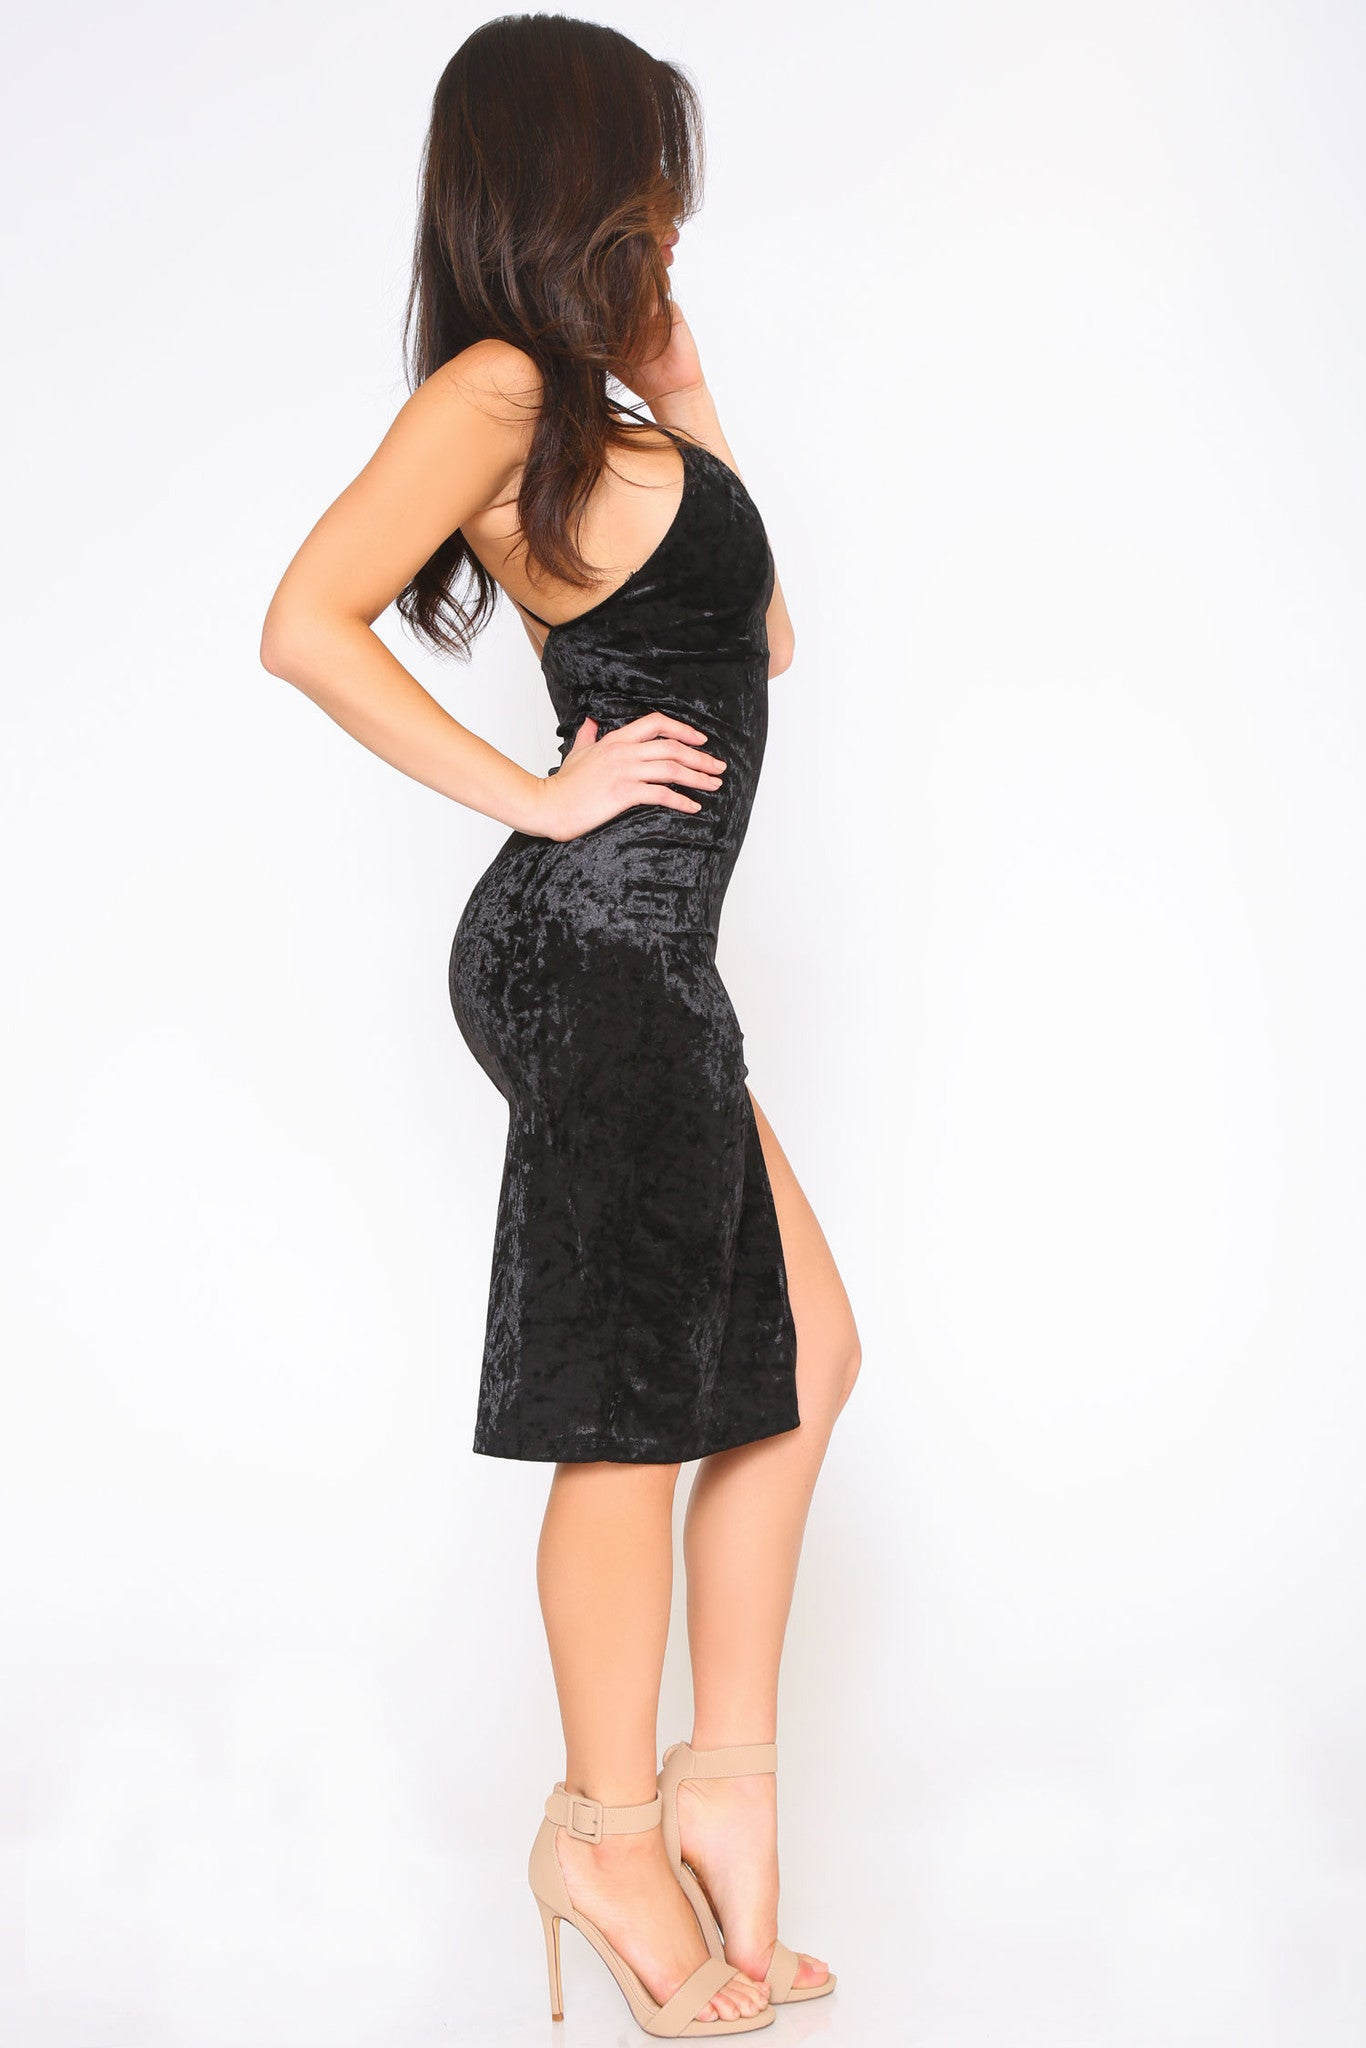 NAOMI DRESS - Glam Envy - 2